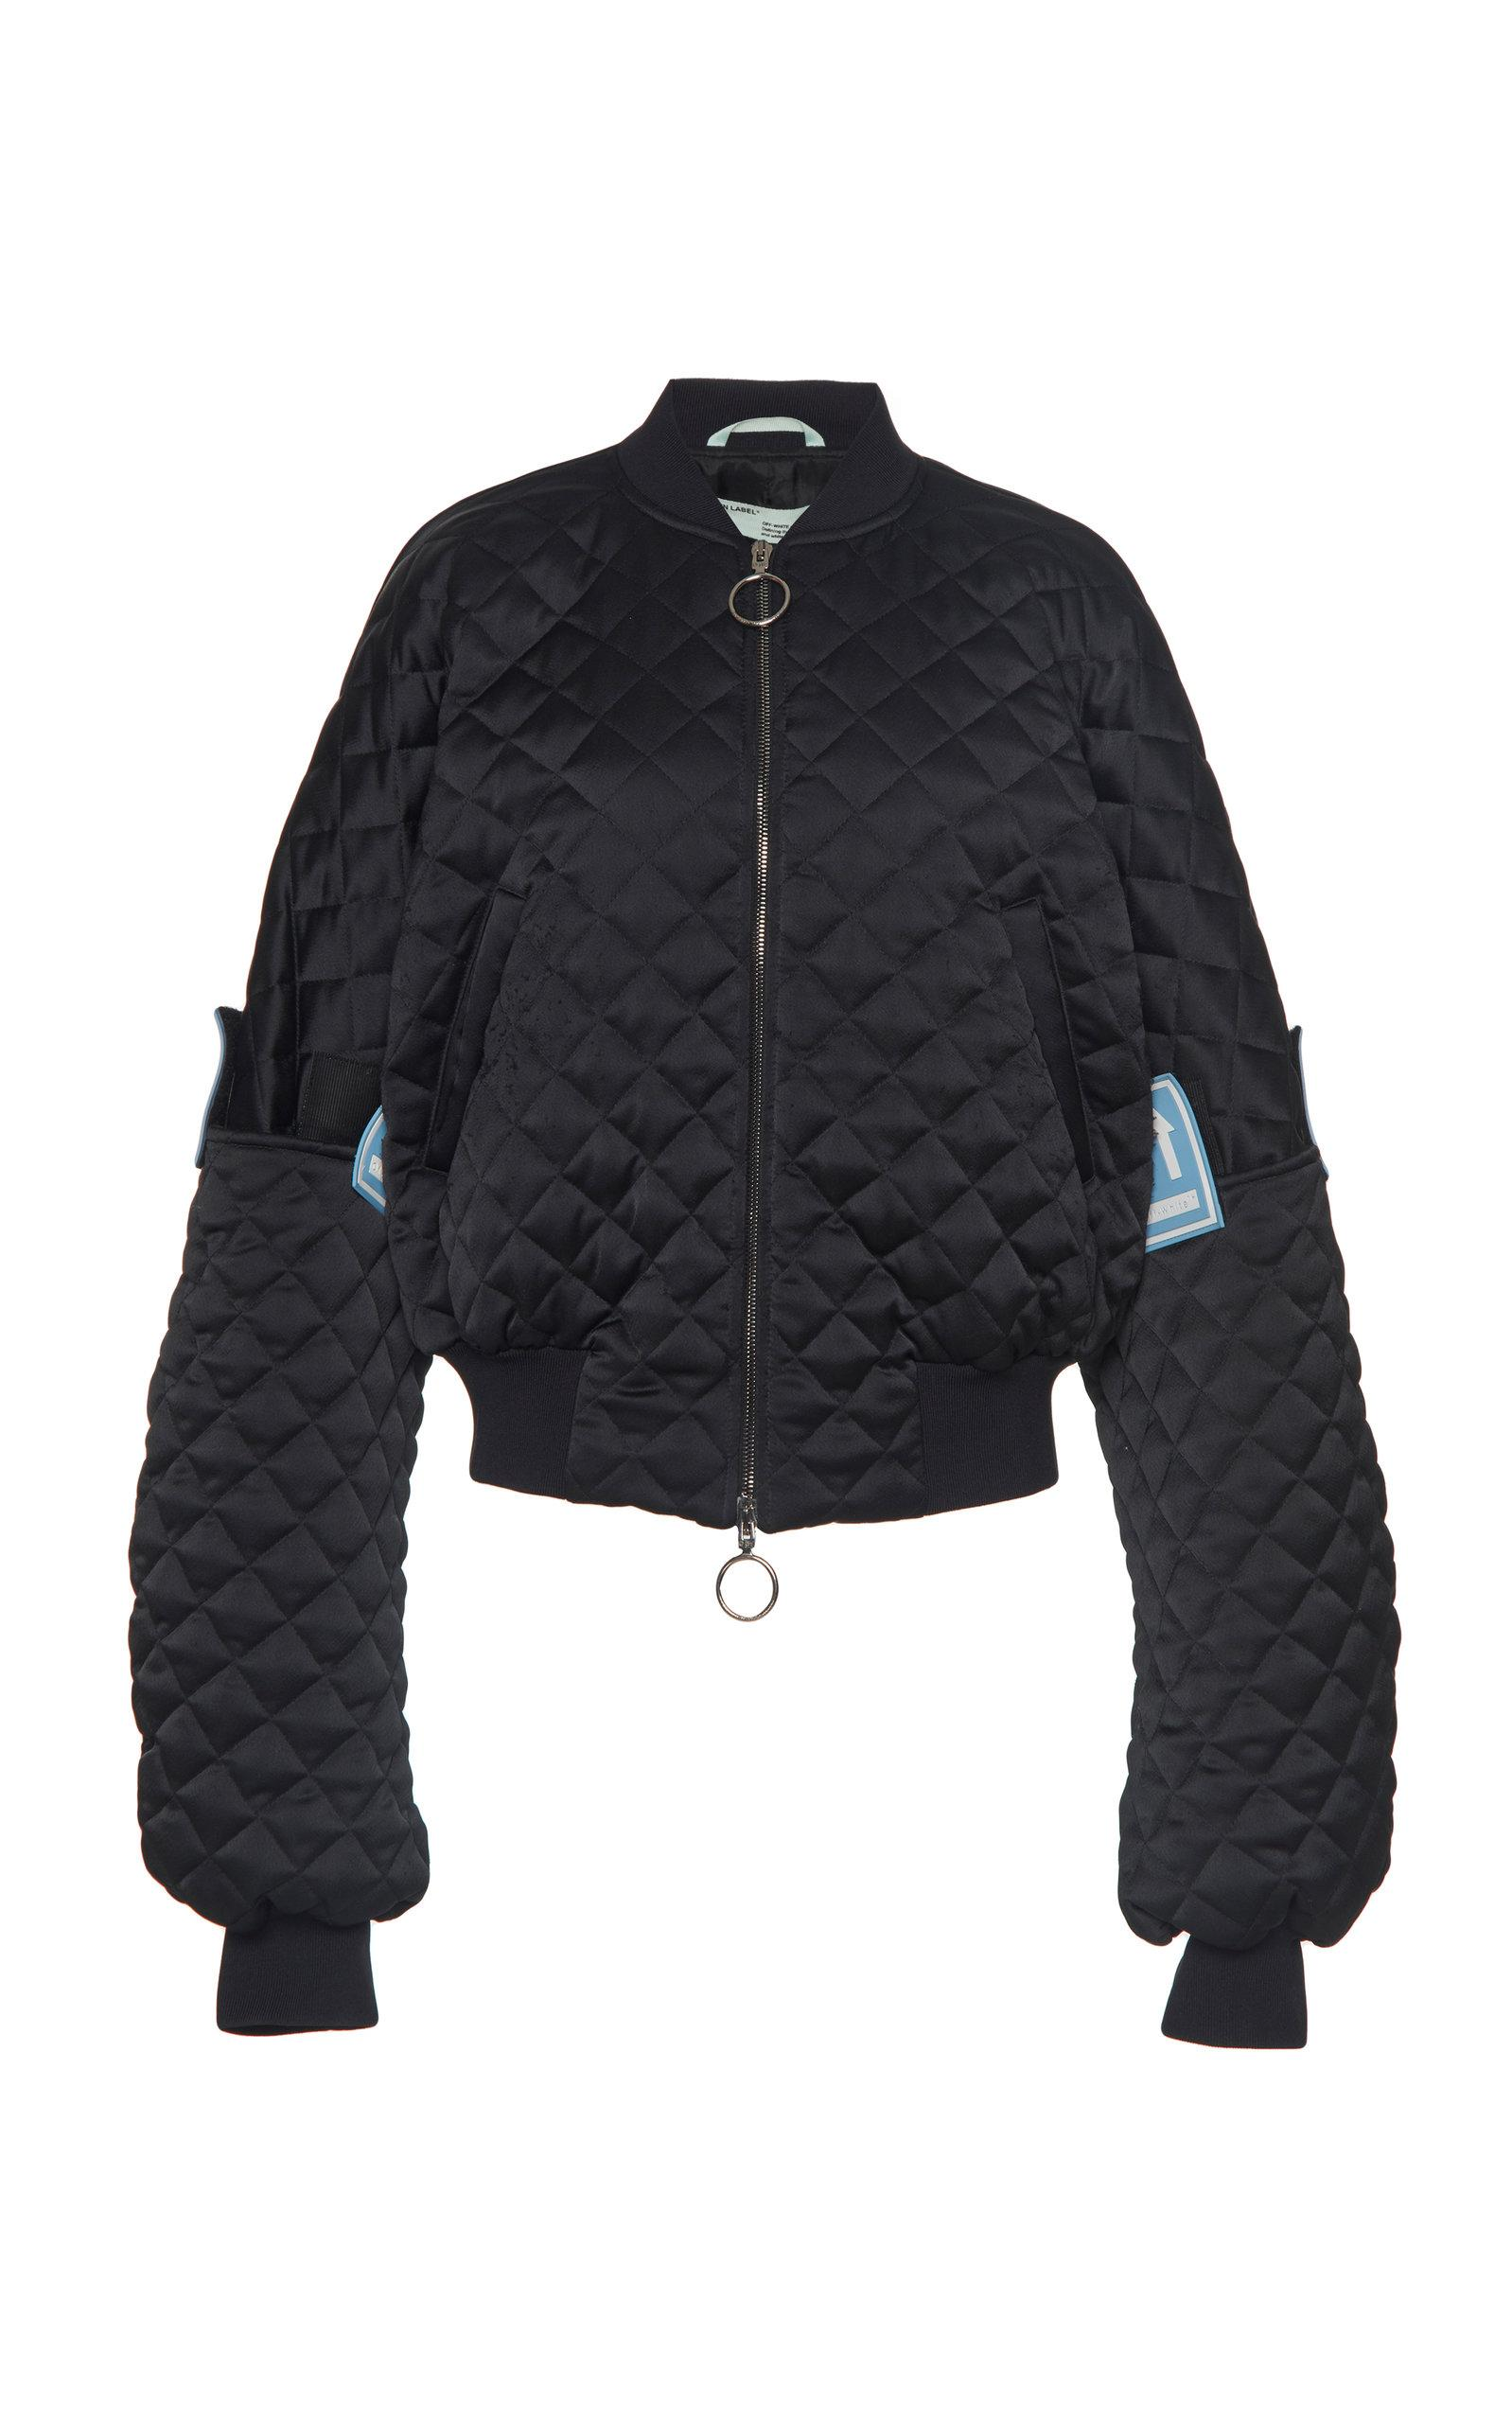 79c011ddd Quilted Oversized Bomber Jacket in Black